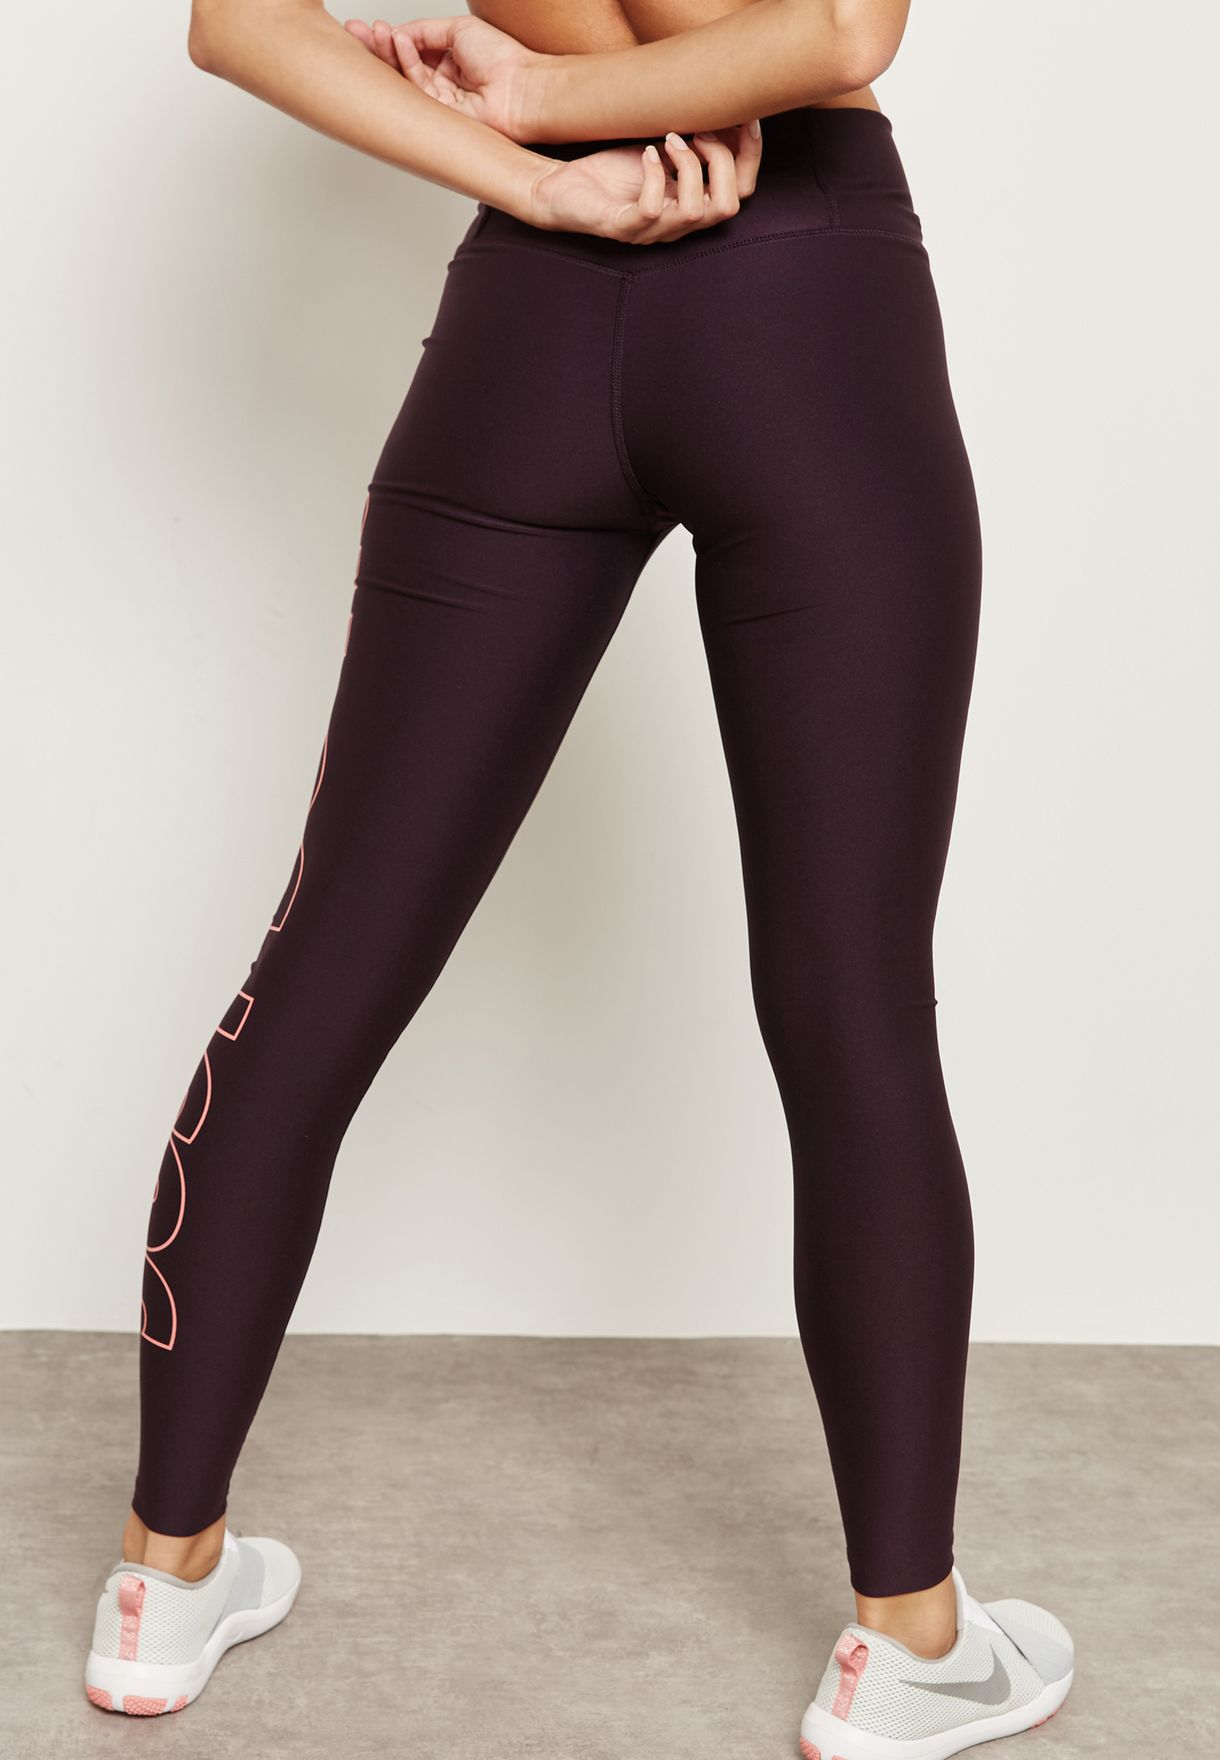 24a4894abec6a8 Shop Nike burgundy Power Just Do It Tights 897878-652 for Women in ...